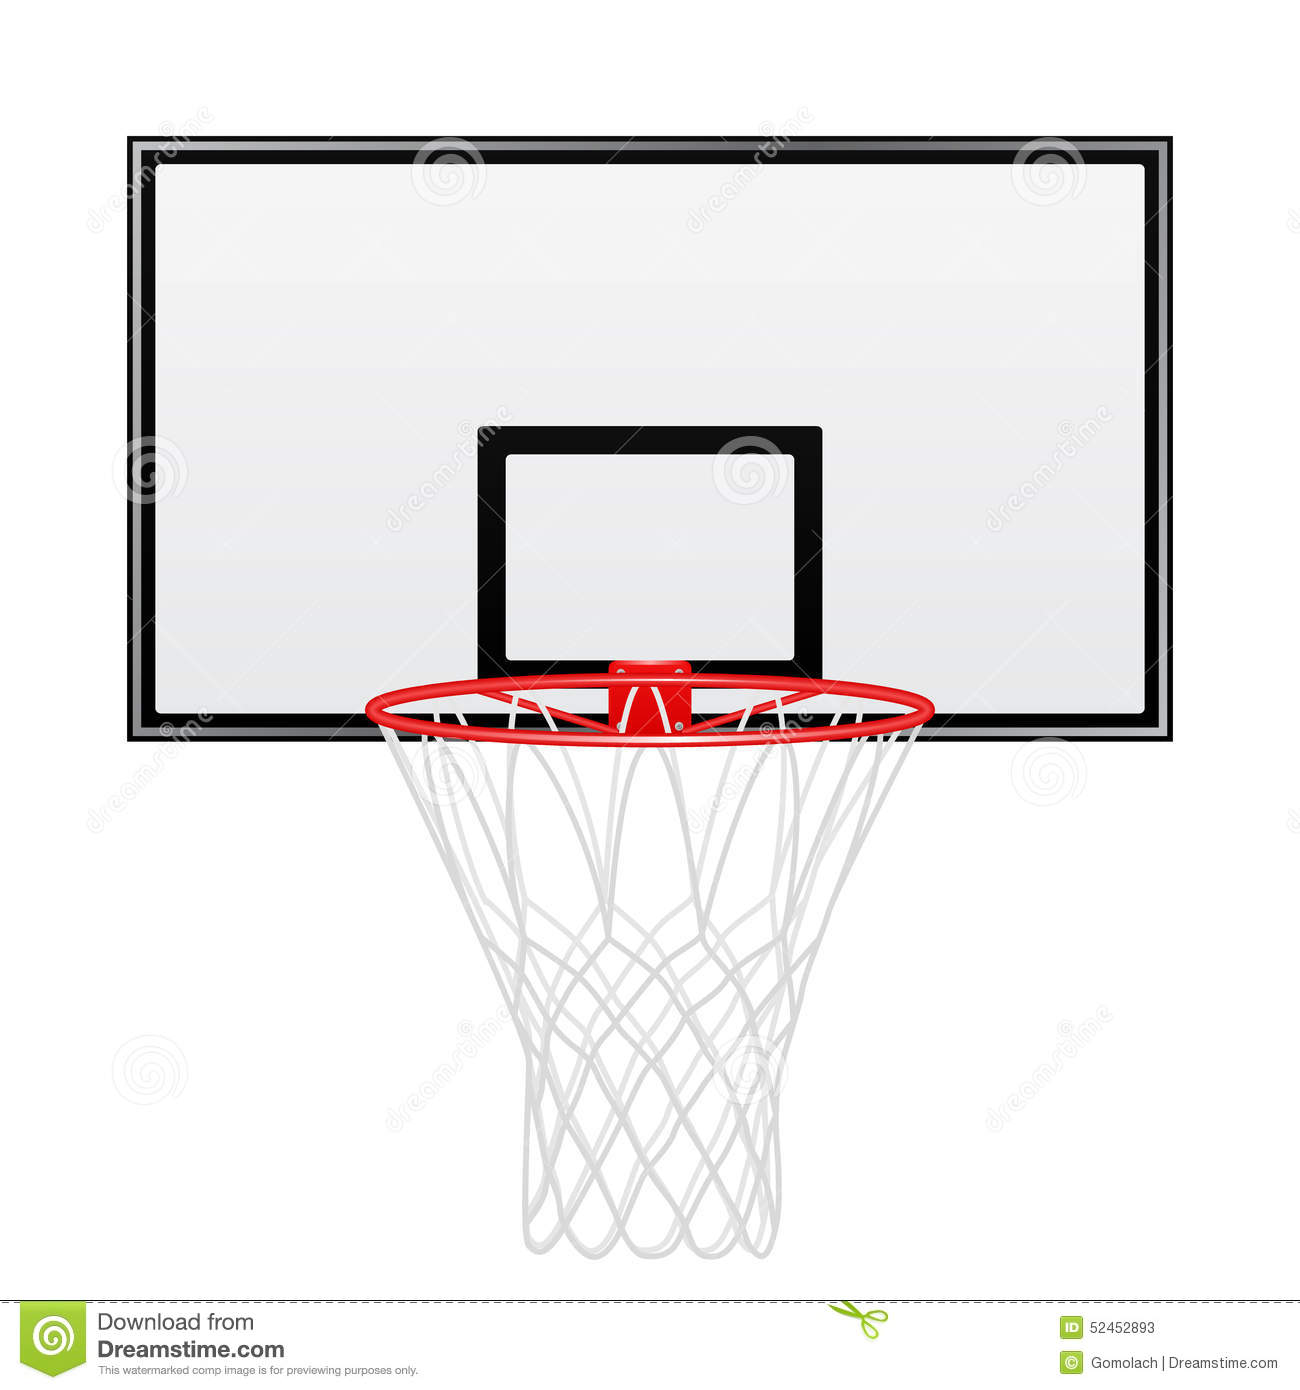 Black And Red Basketball Backboard Isolated On White Background.